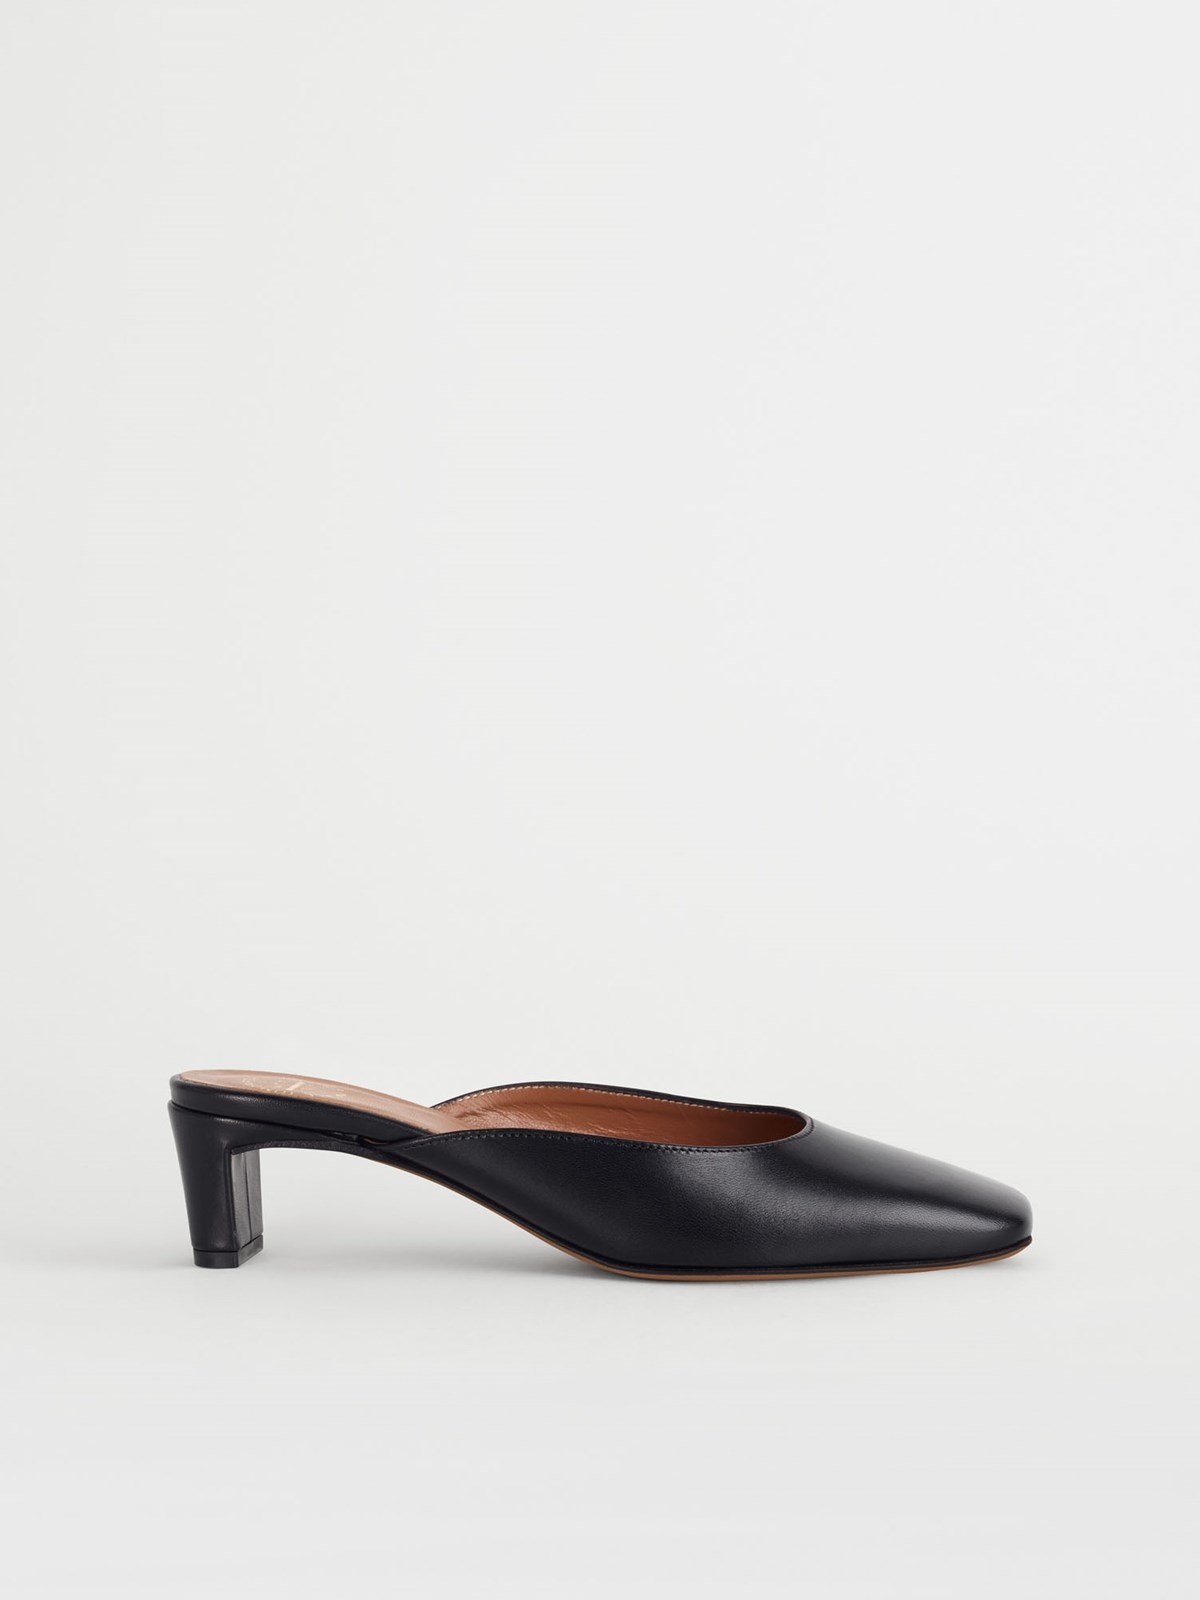 Alloro Black Mules